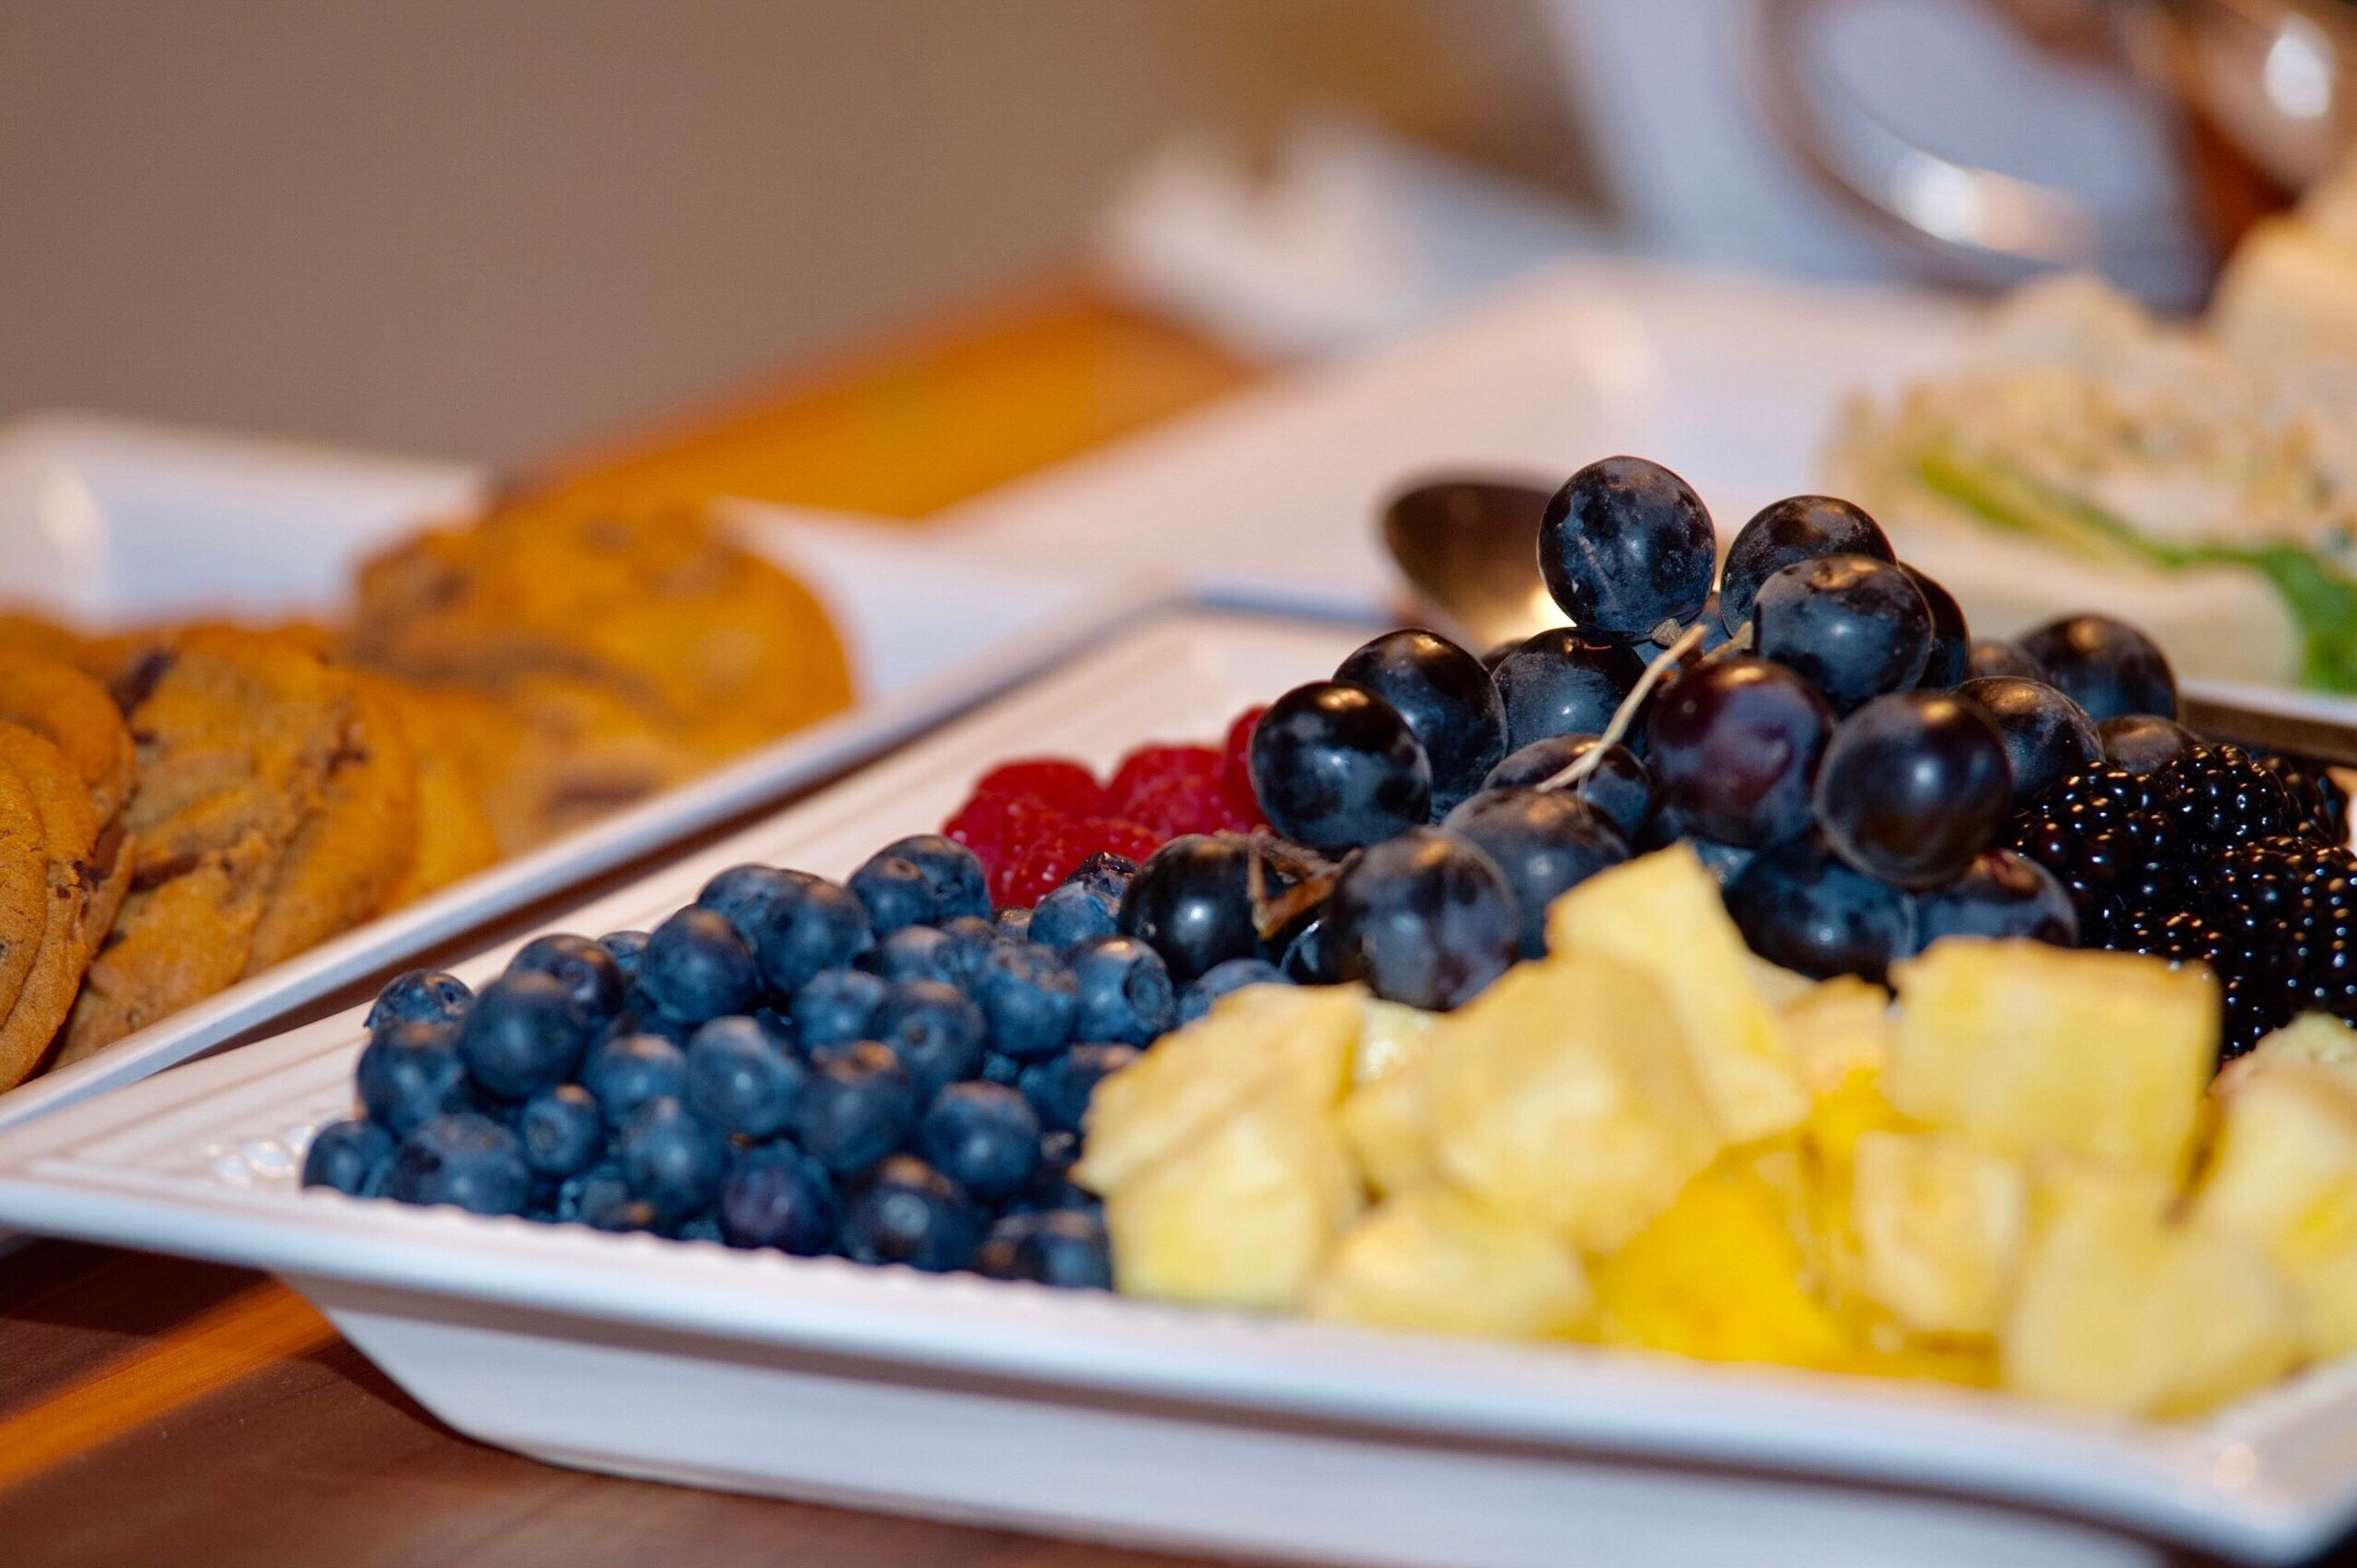 food and drink, food, fruit, blueberry, freshness, blackberry, still life, table, no people, indoors, close-up, healthy eating, sweet food, plate, dessert, ready-to-eat, tart - dessert, day